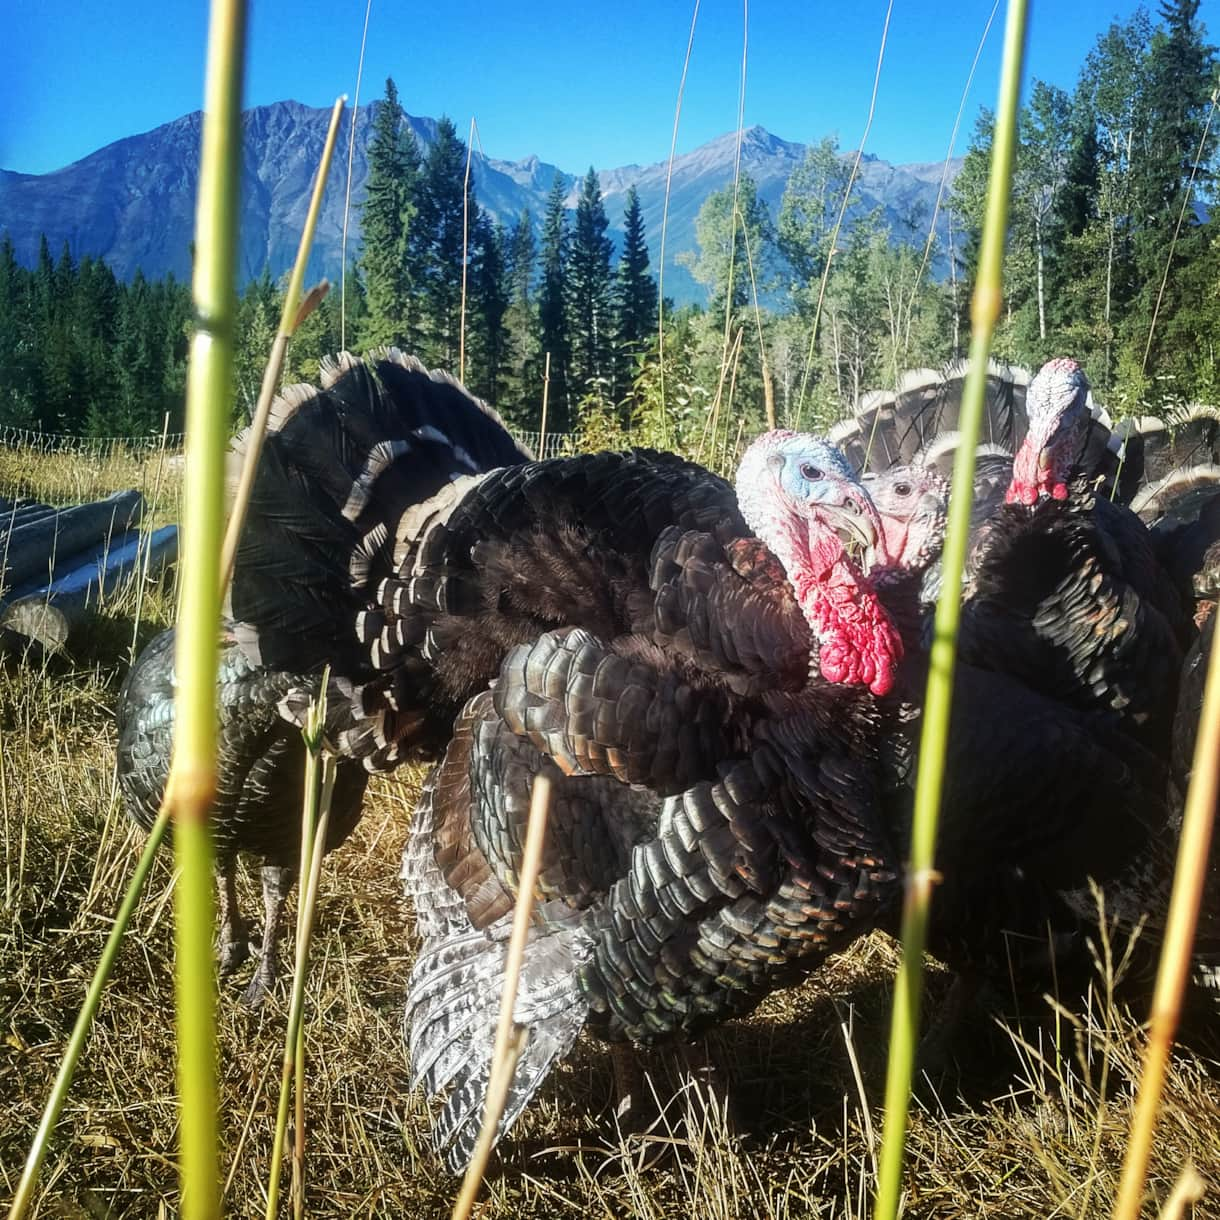 Pasture raised turkeys in the summer. Seasonal paid ranch tours on request